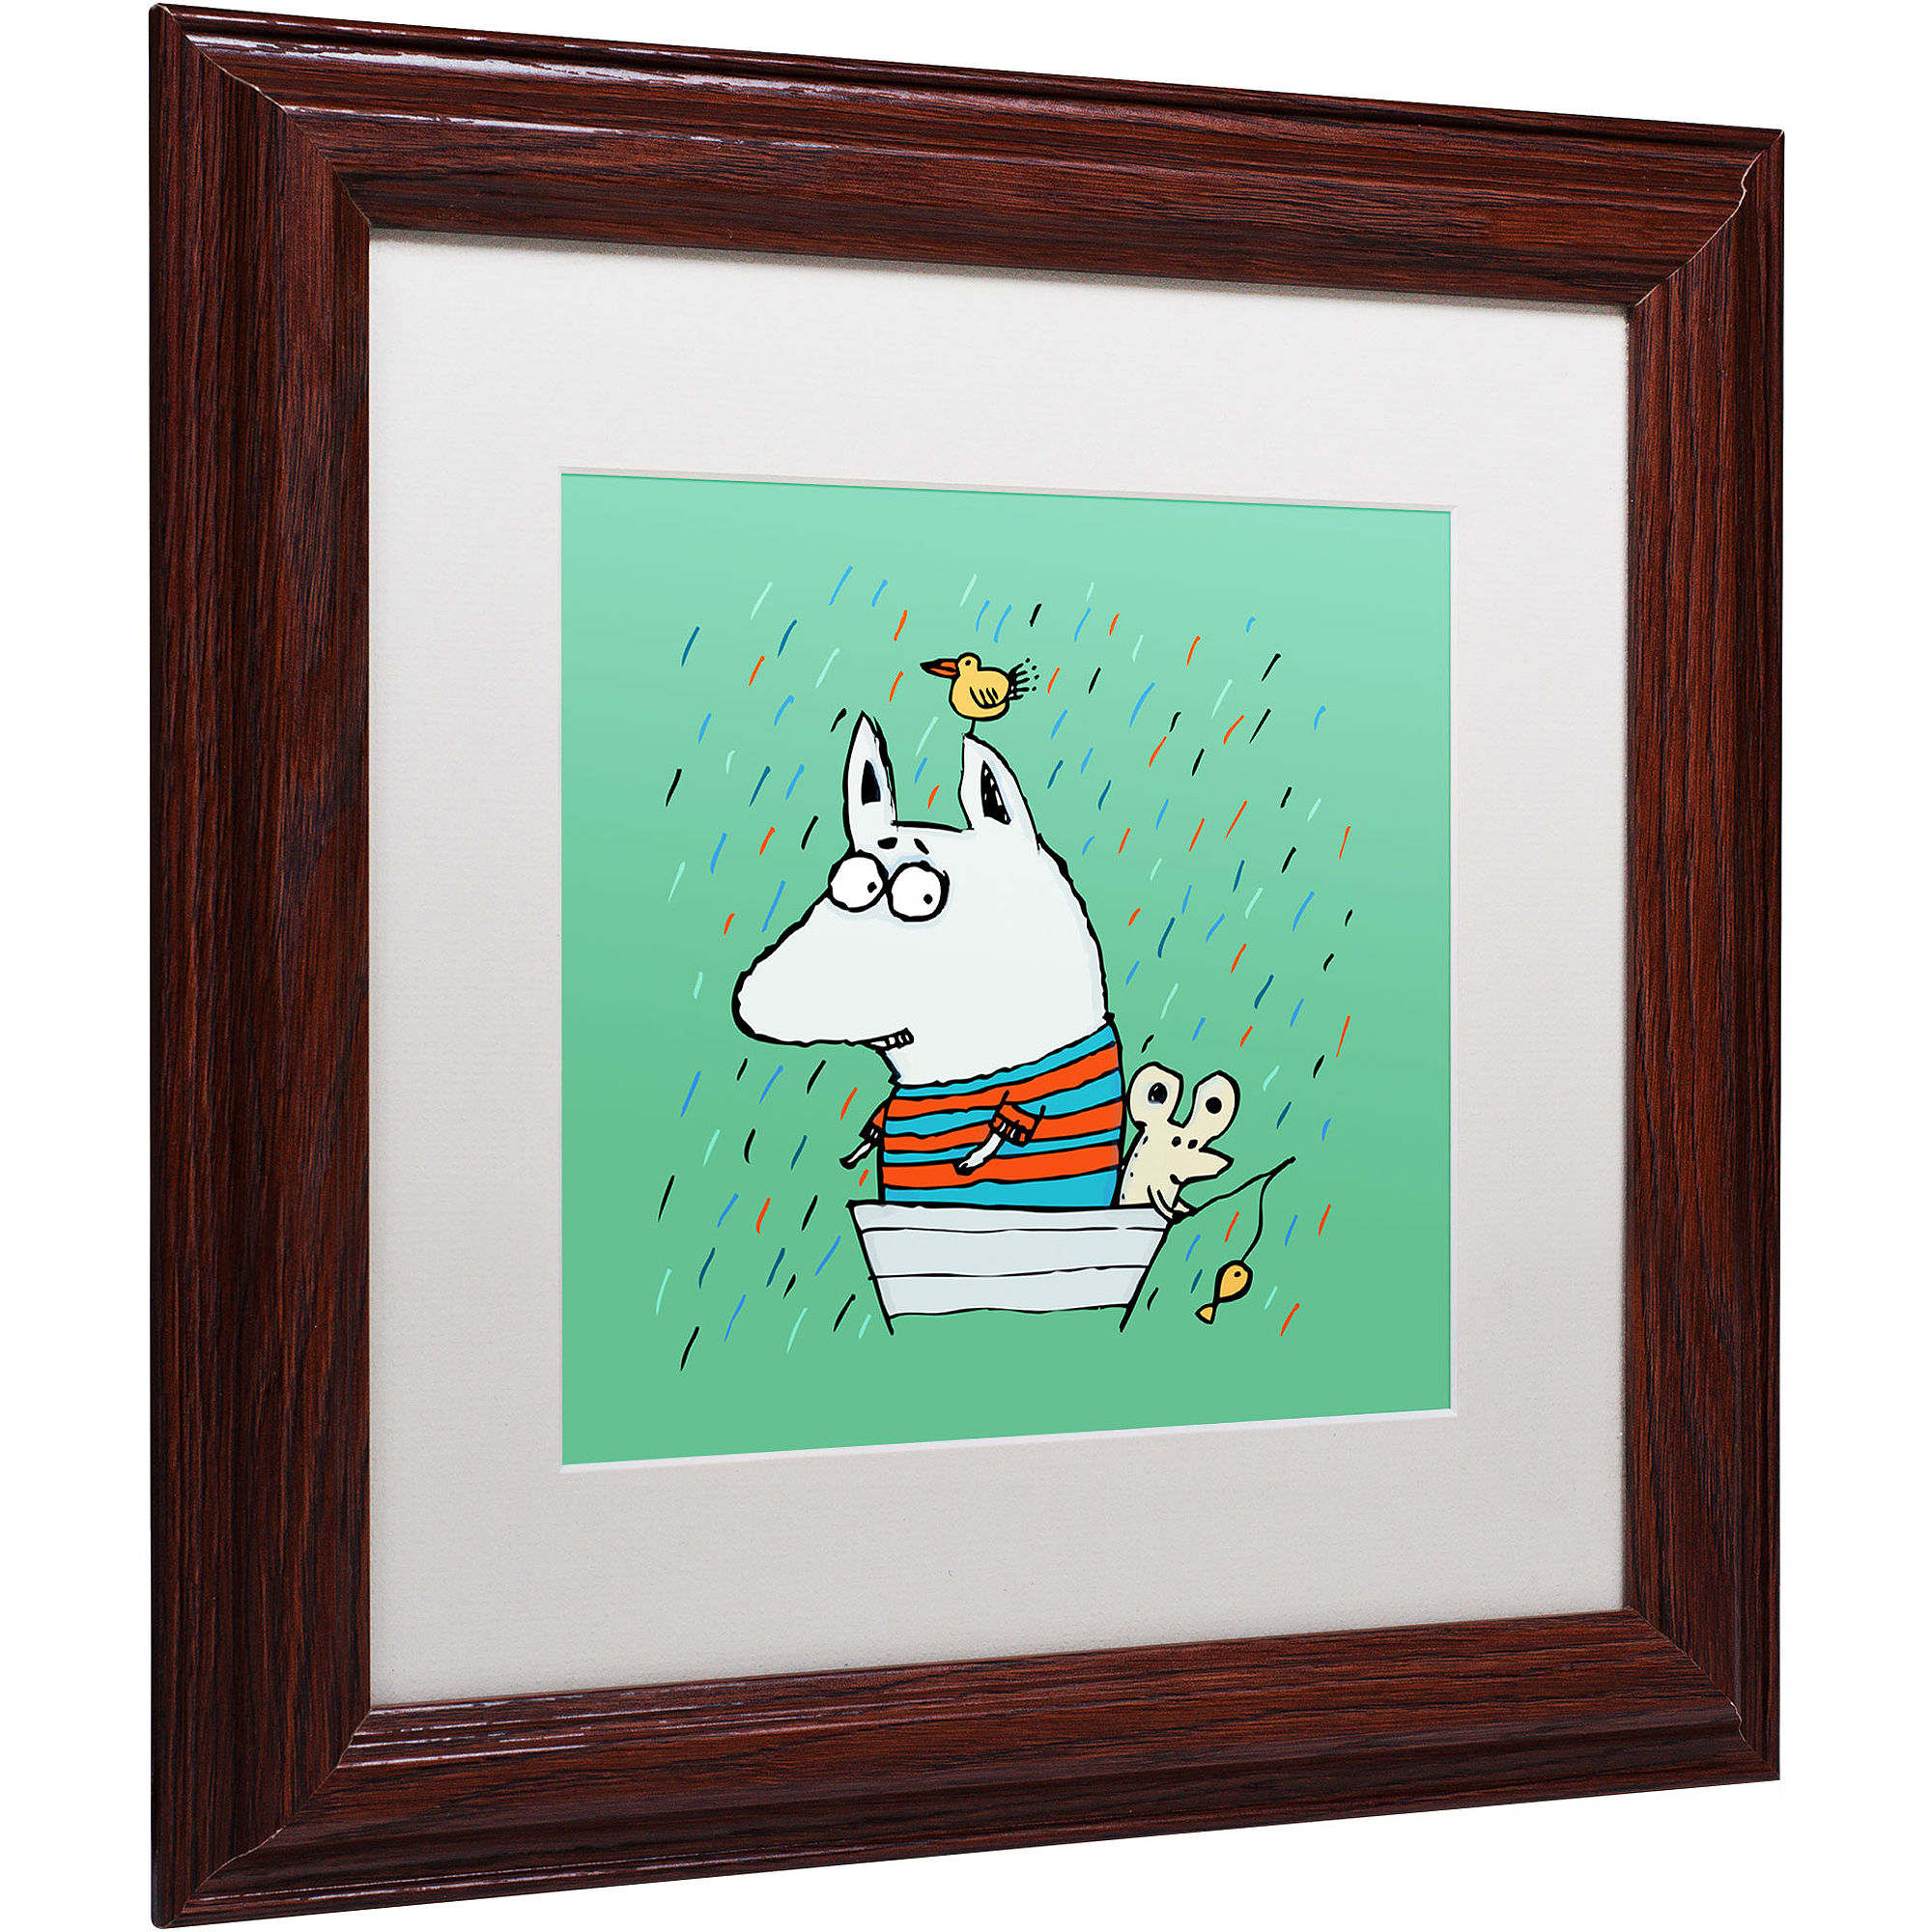 """Trademark Fine Art """"Lost at Sea"""" Canvas Art by Carla Martell, White Matte, Wood Frame"""